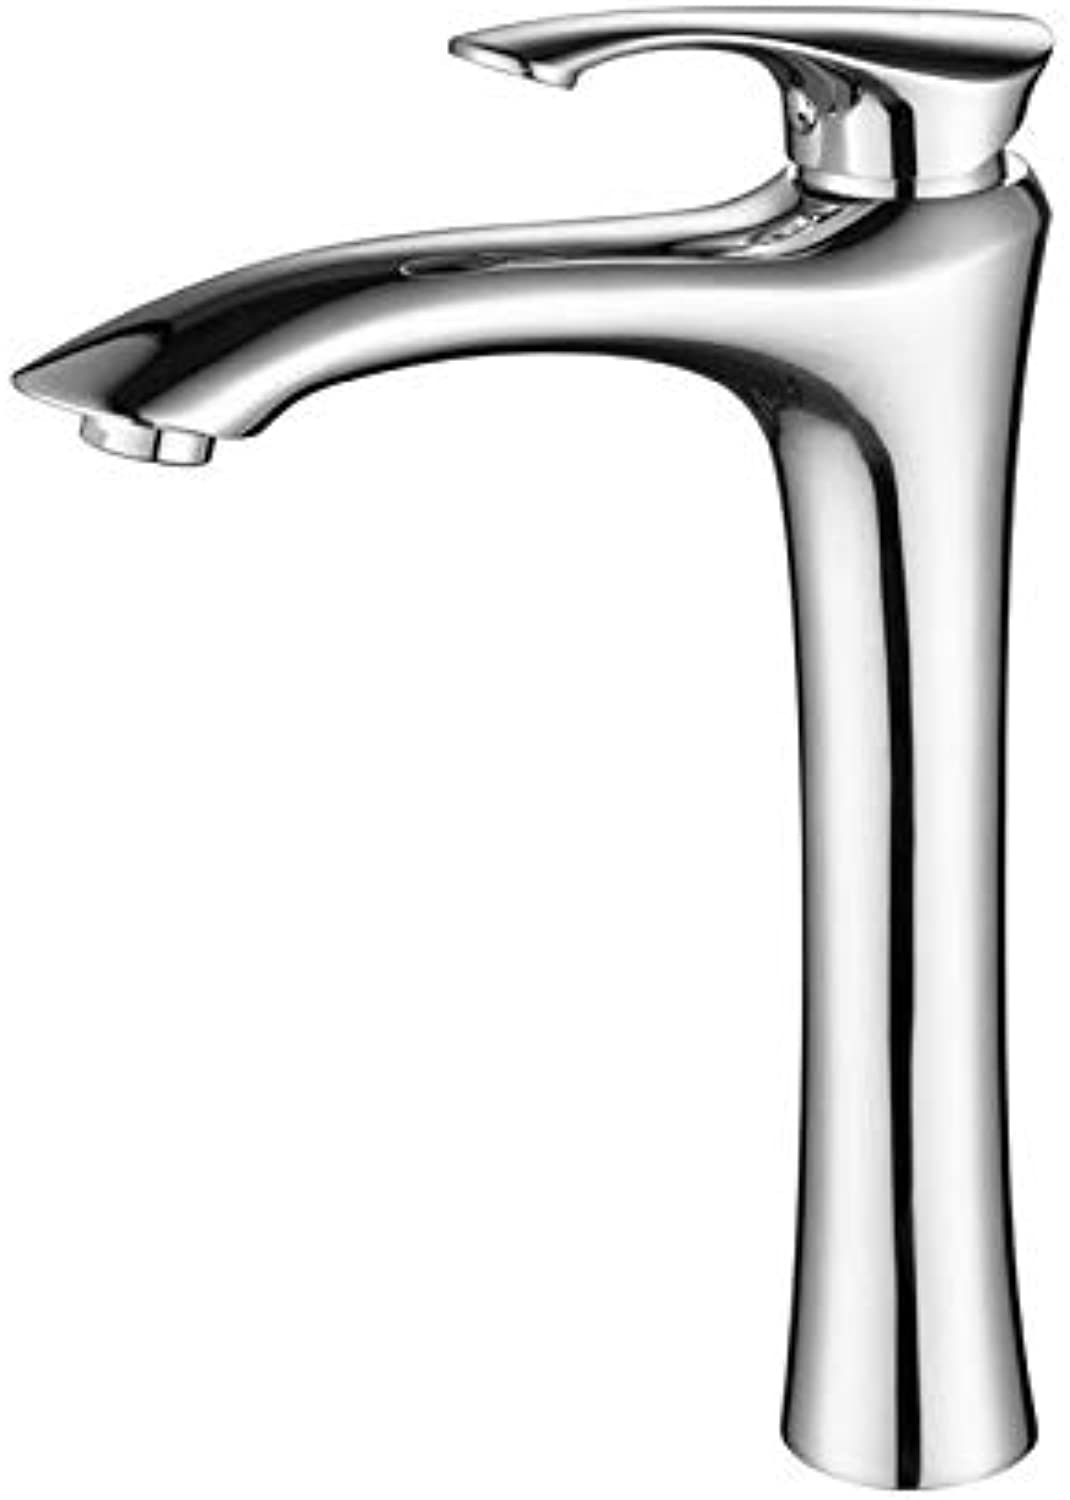 redOOY Taps Faucet Basin Faucet Bathroom Bathroom Basin Faucet Copper Height Wash Basin Faucet Hot And Cold Single Hole Basin Faucet